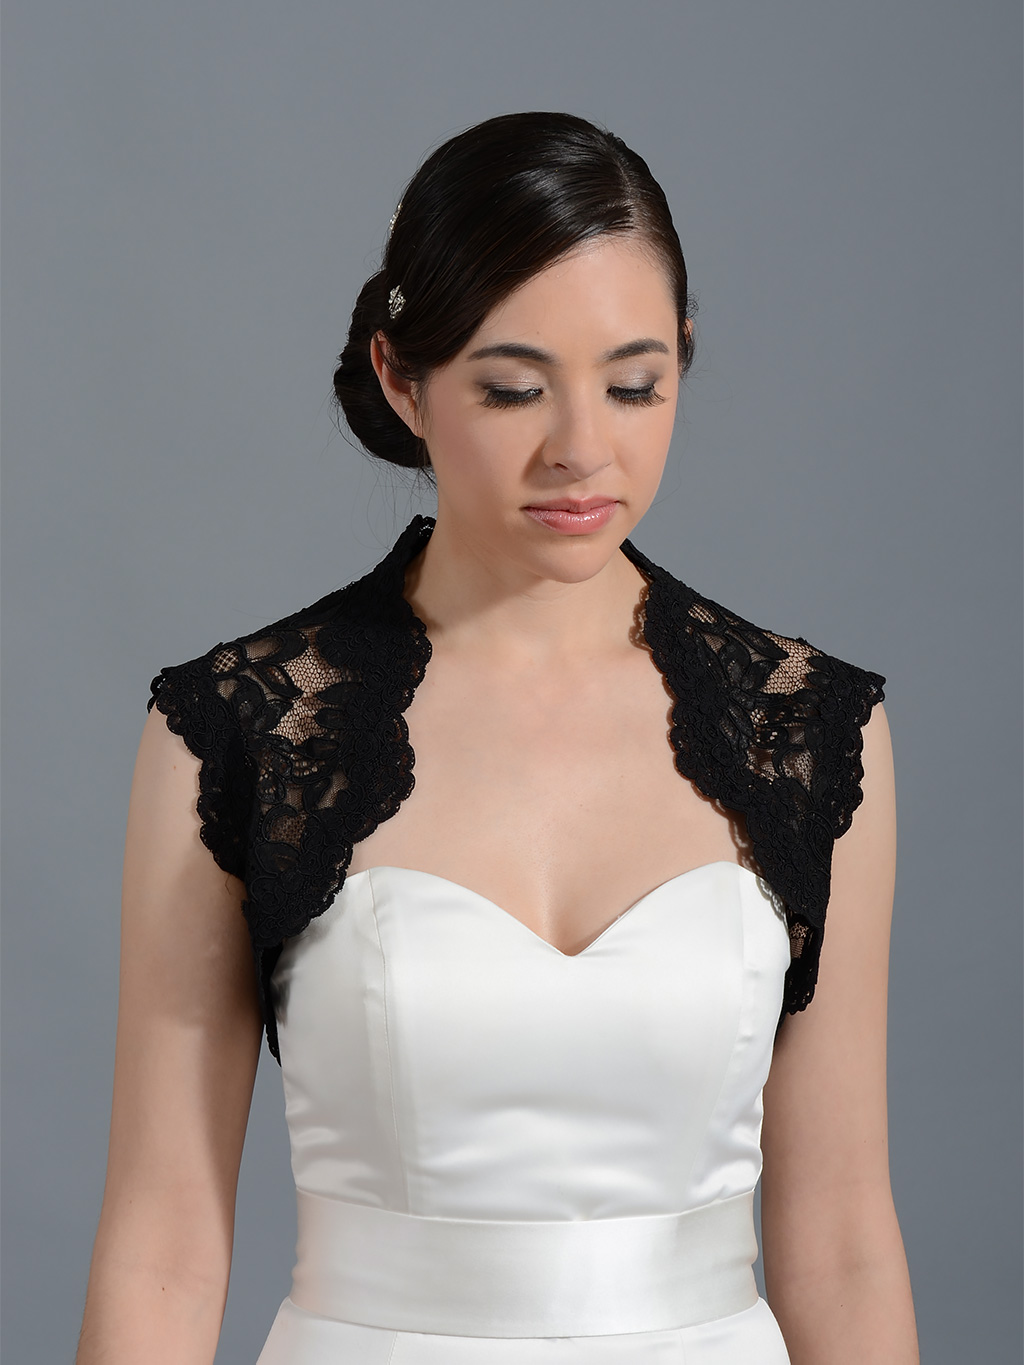 ... Lace Bolero Jacket > Black sleeveless bridal alencon lace bolero